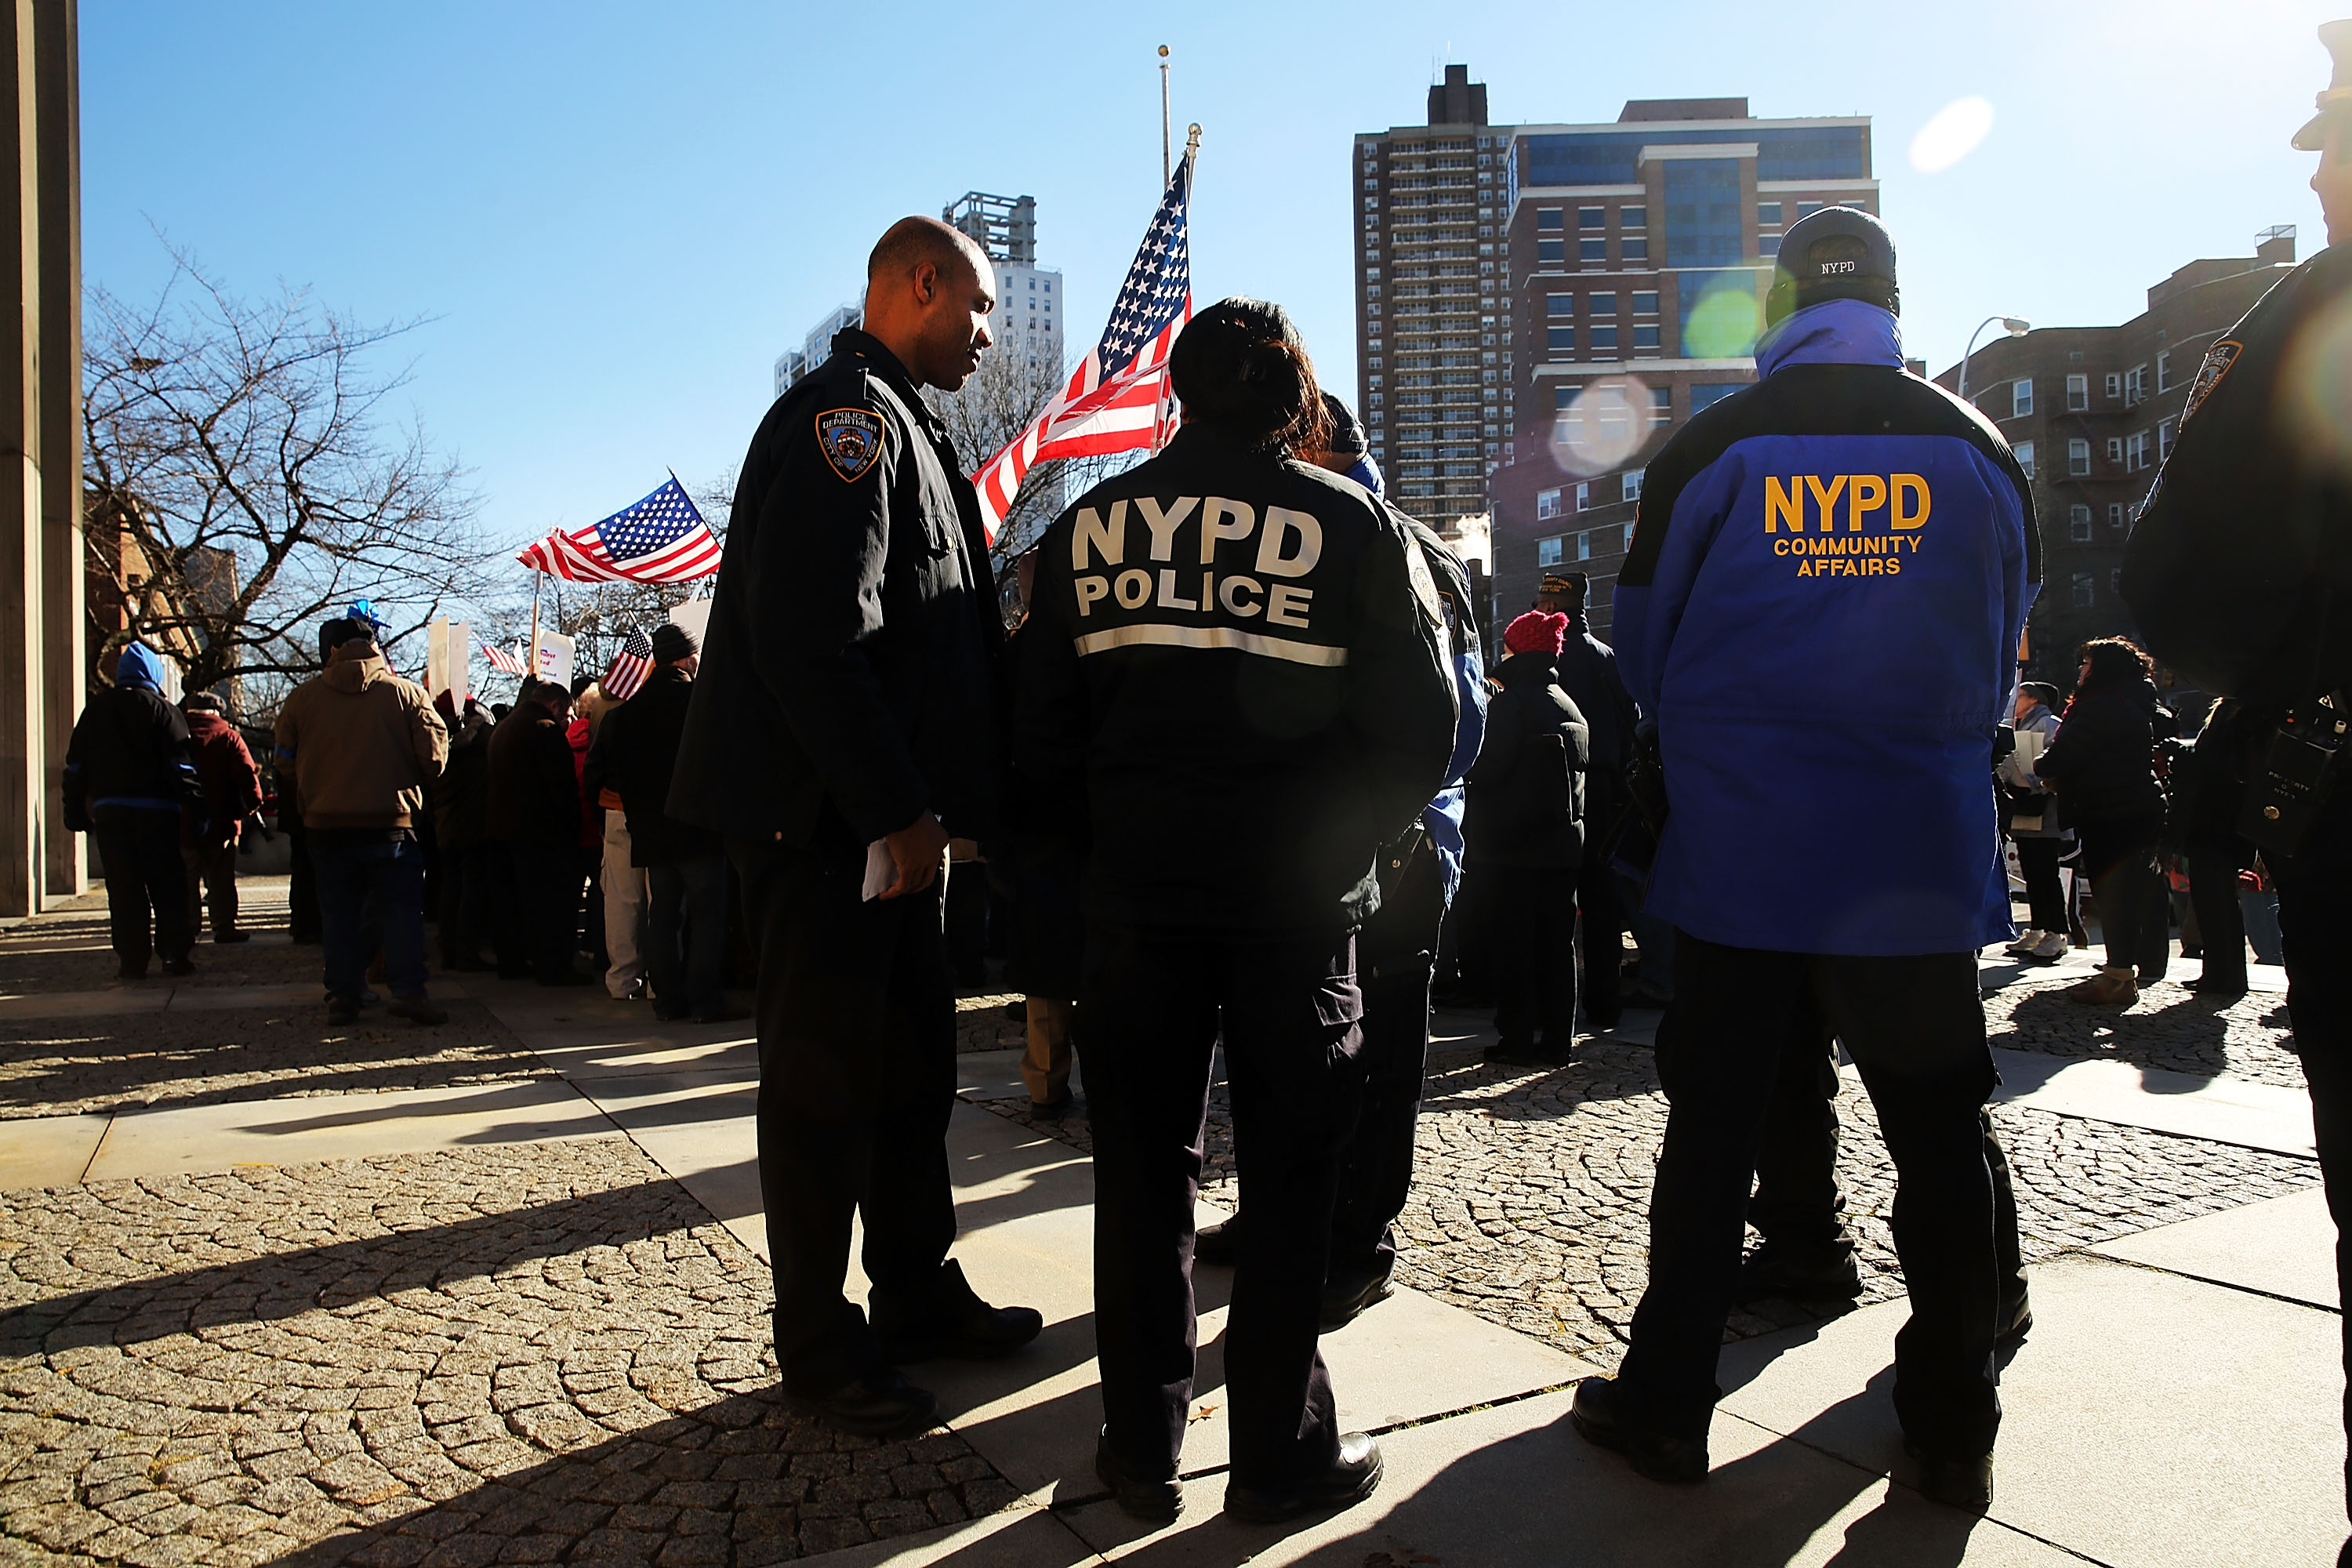 NYPD officers who altered Wiki pages on Eric Garner IDed